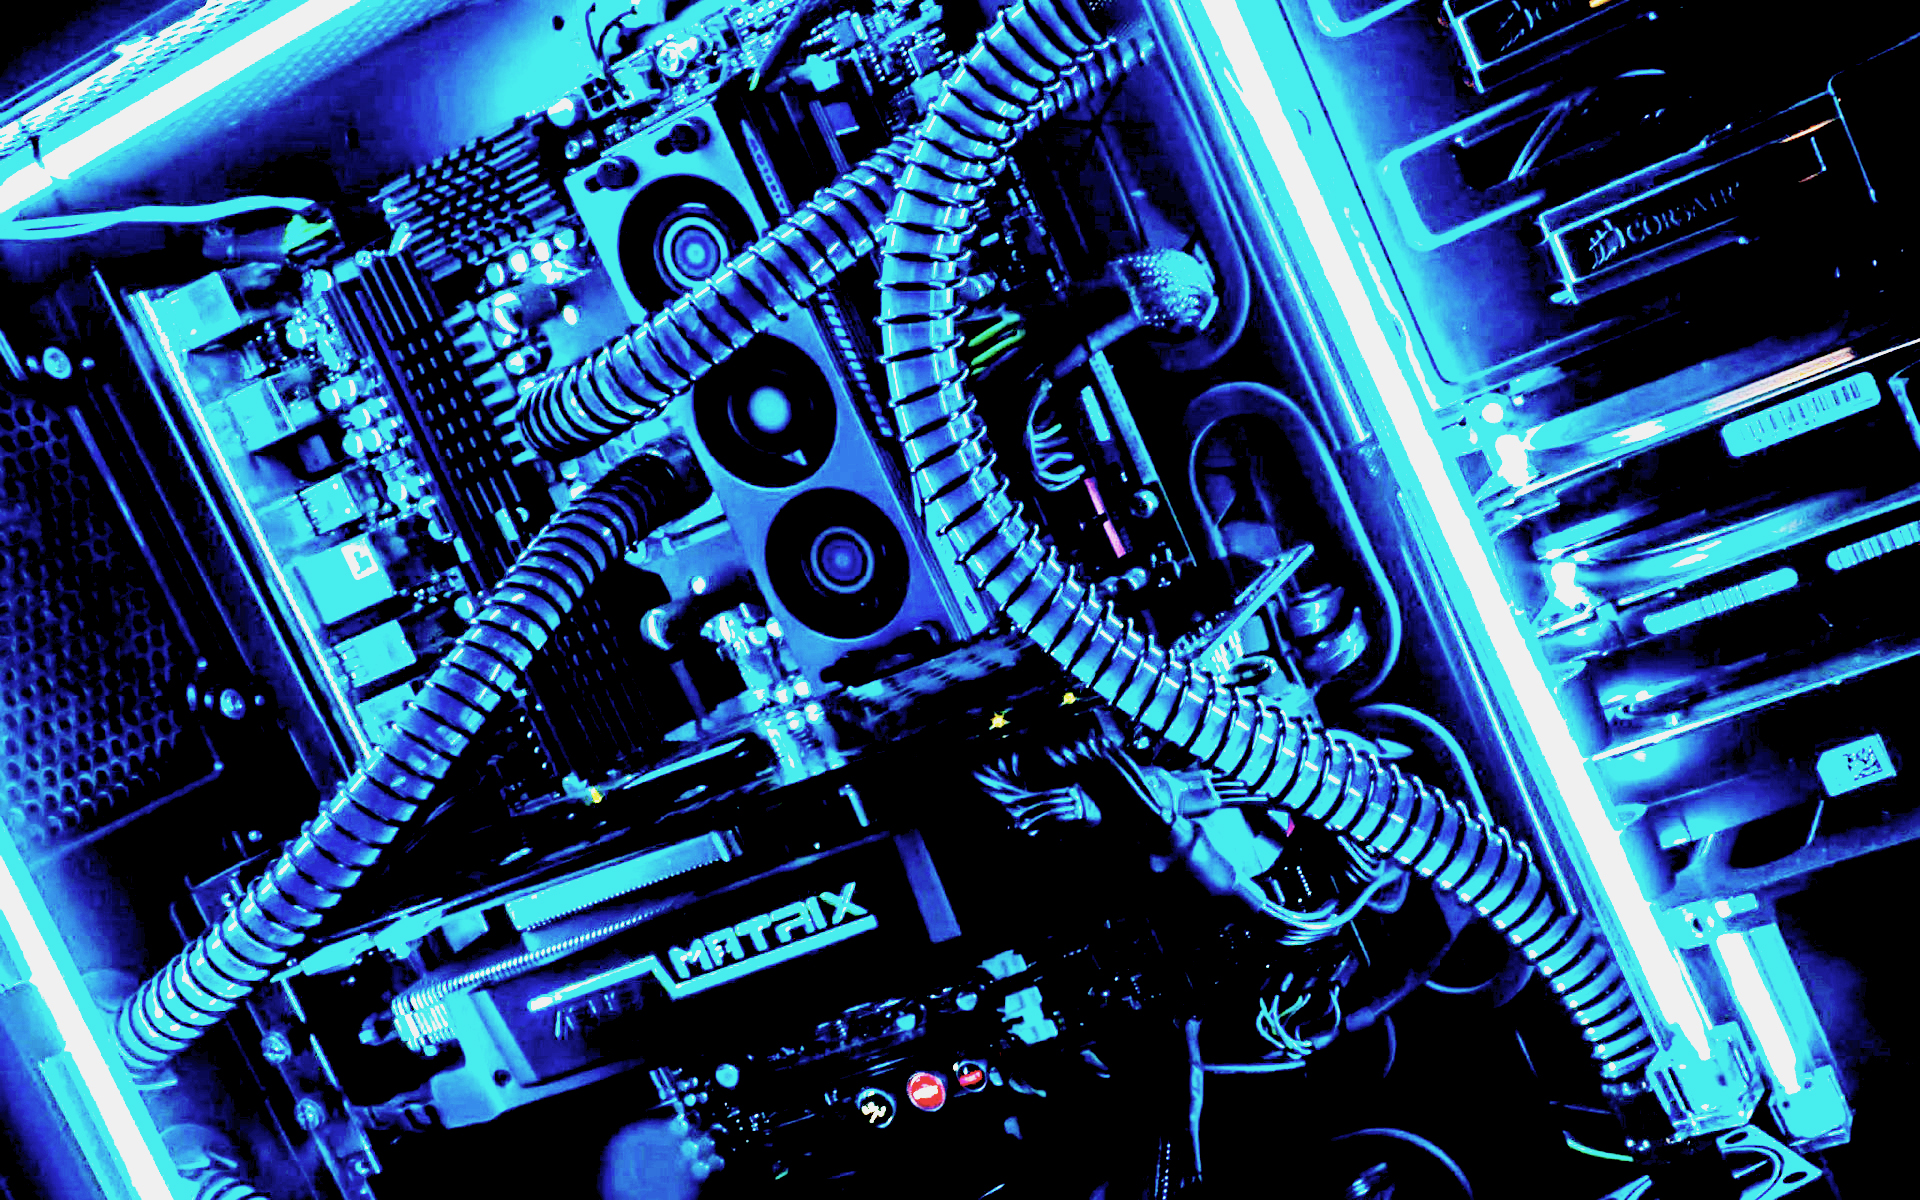 Hardware High Quality Background on Wallpapers Vista